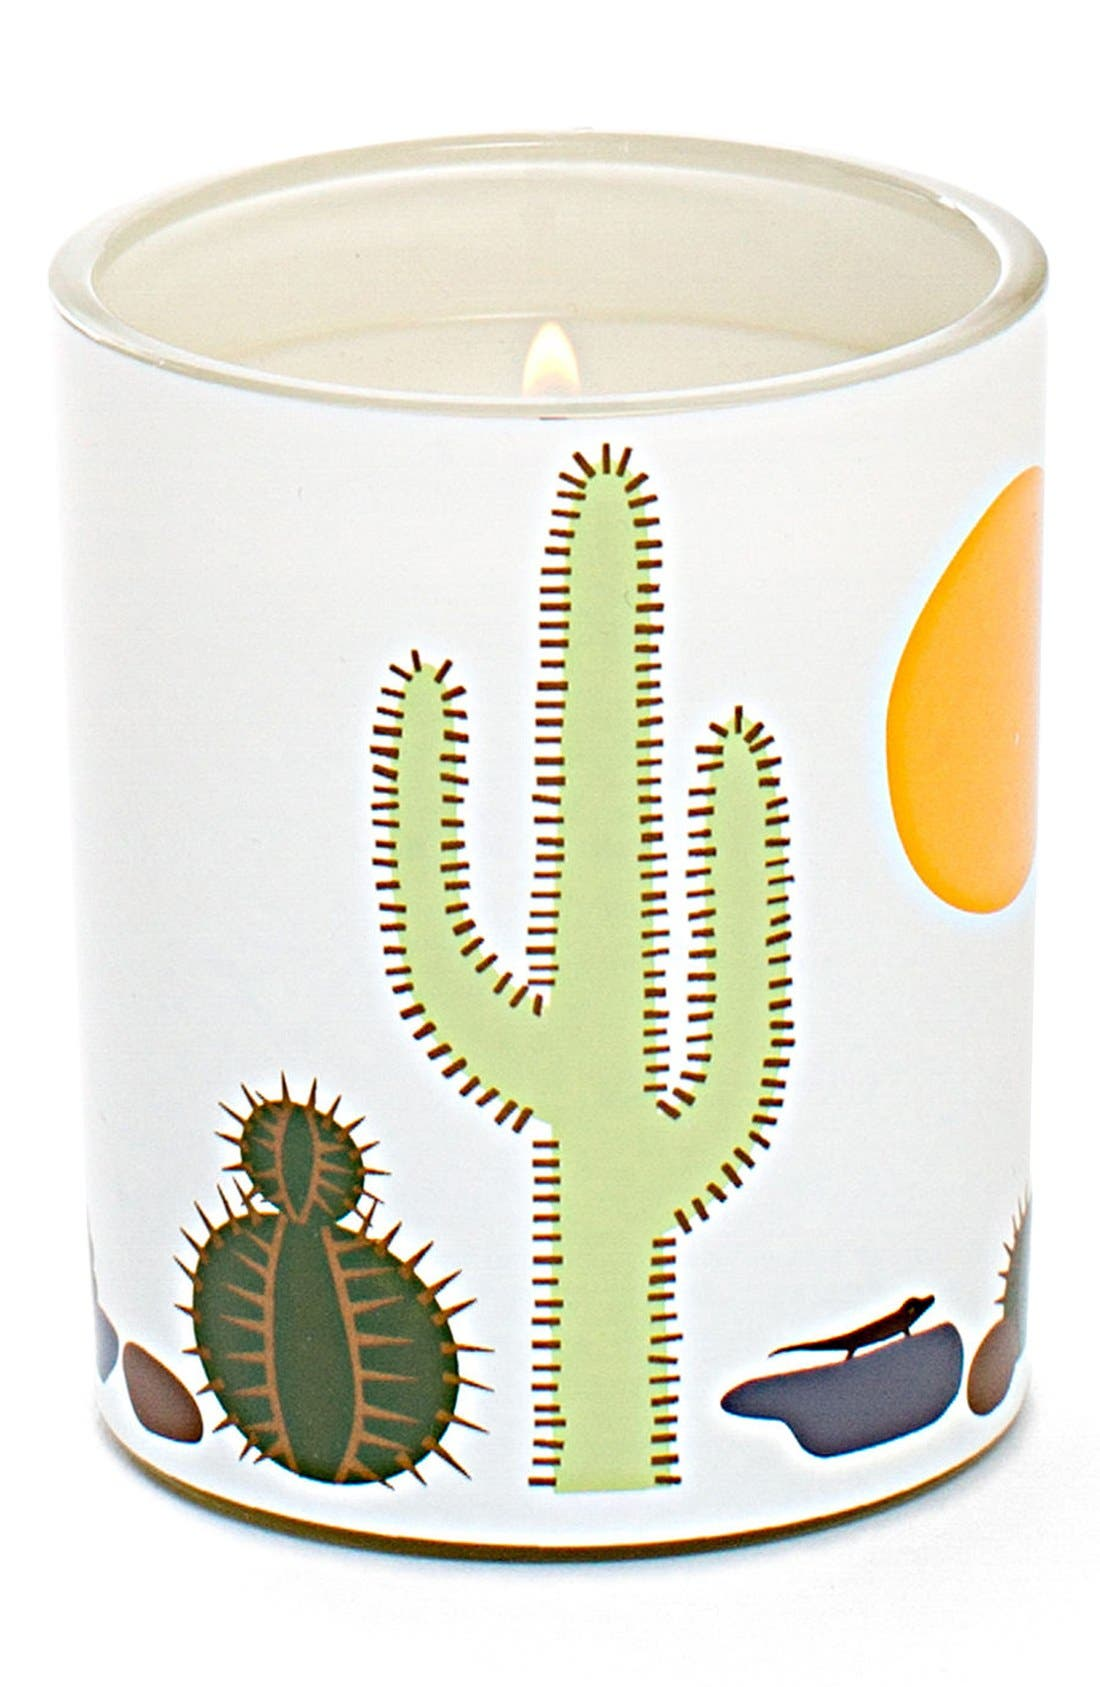 R. NICHOLS 'Spirit' Scented Candle